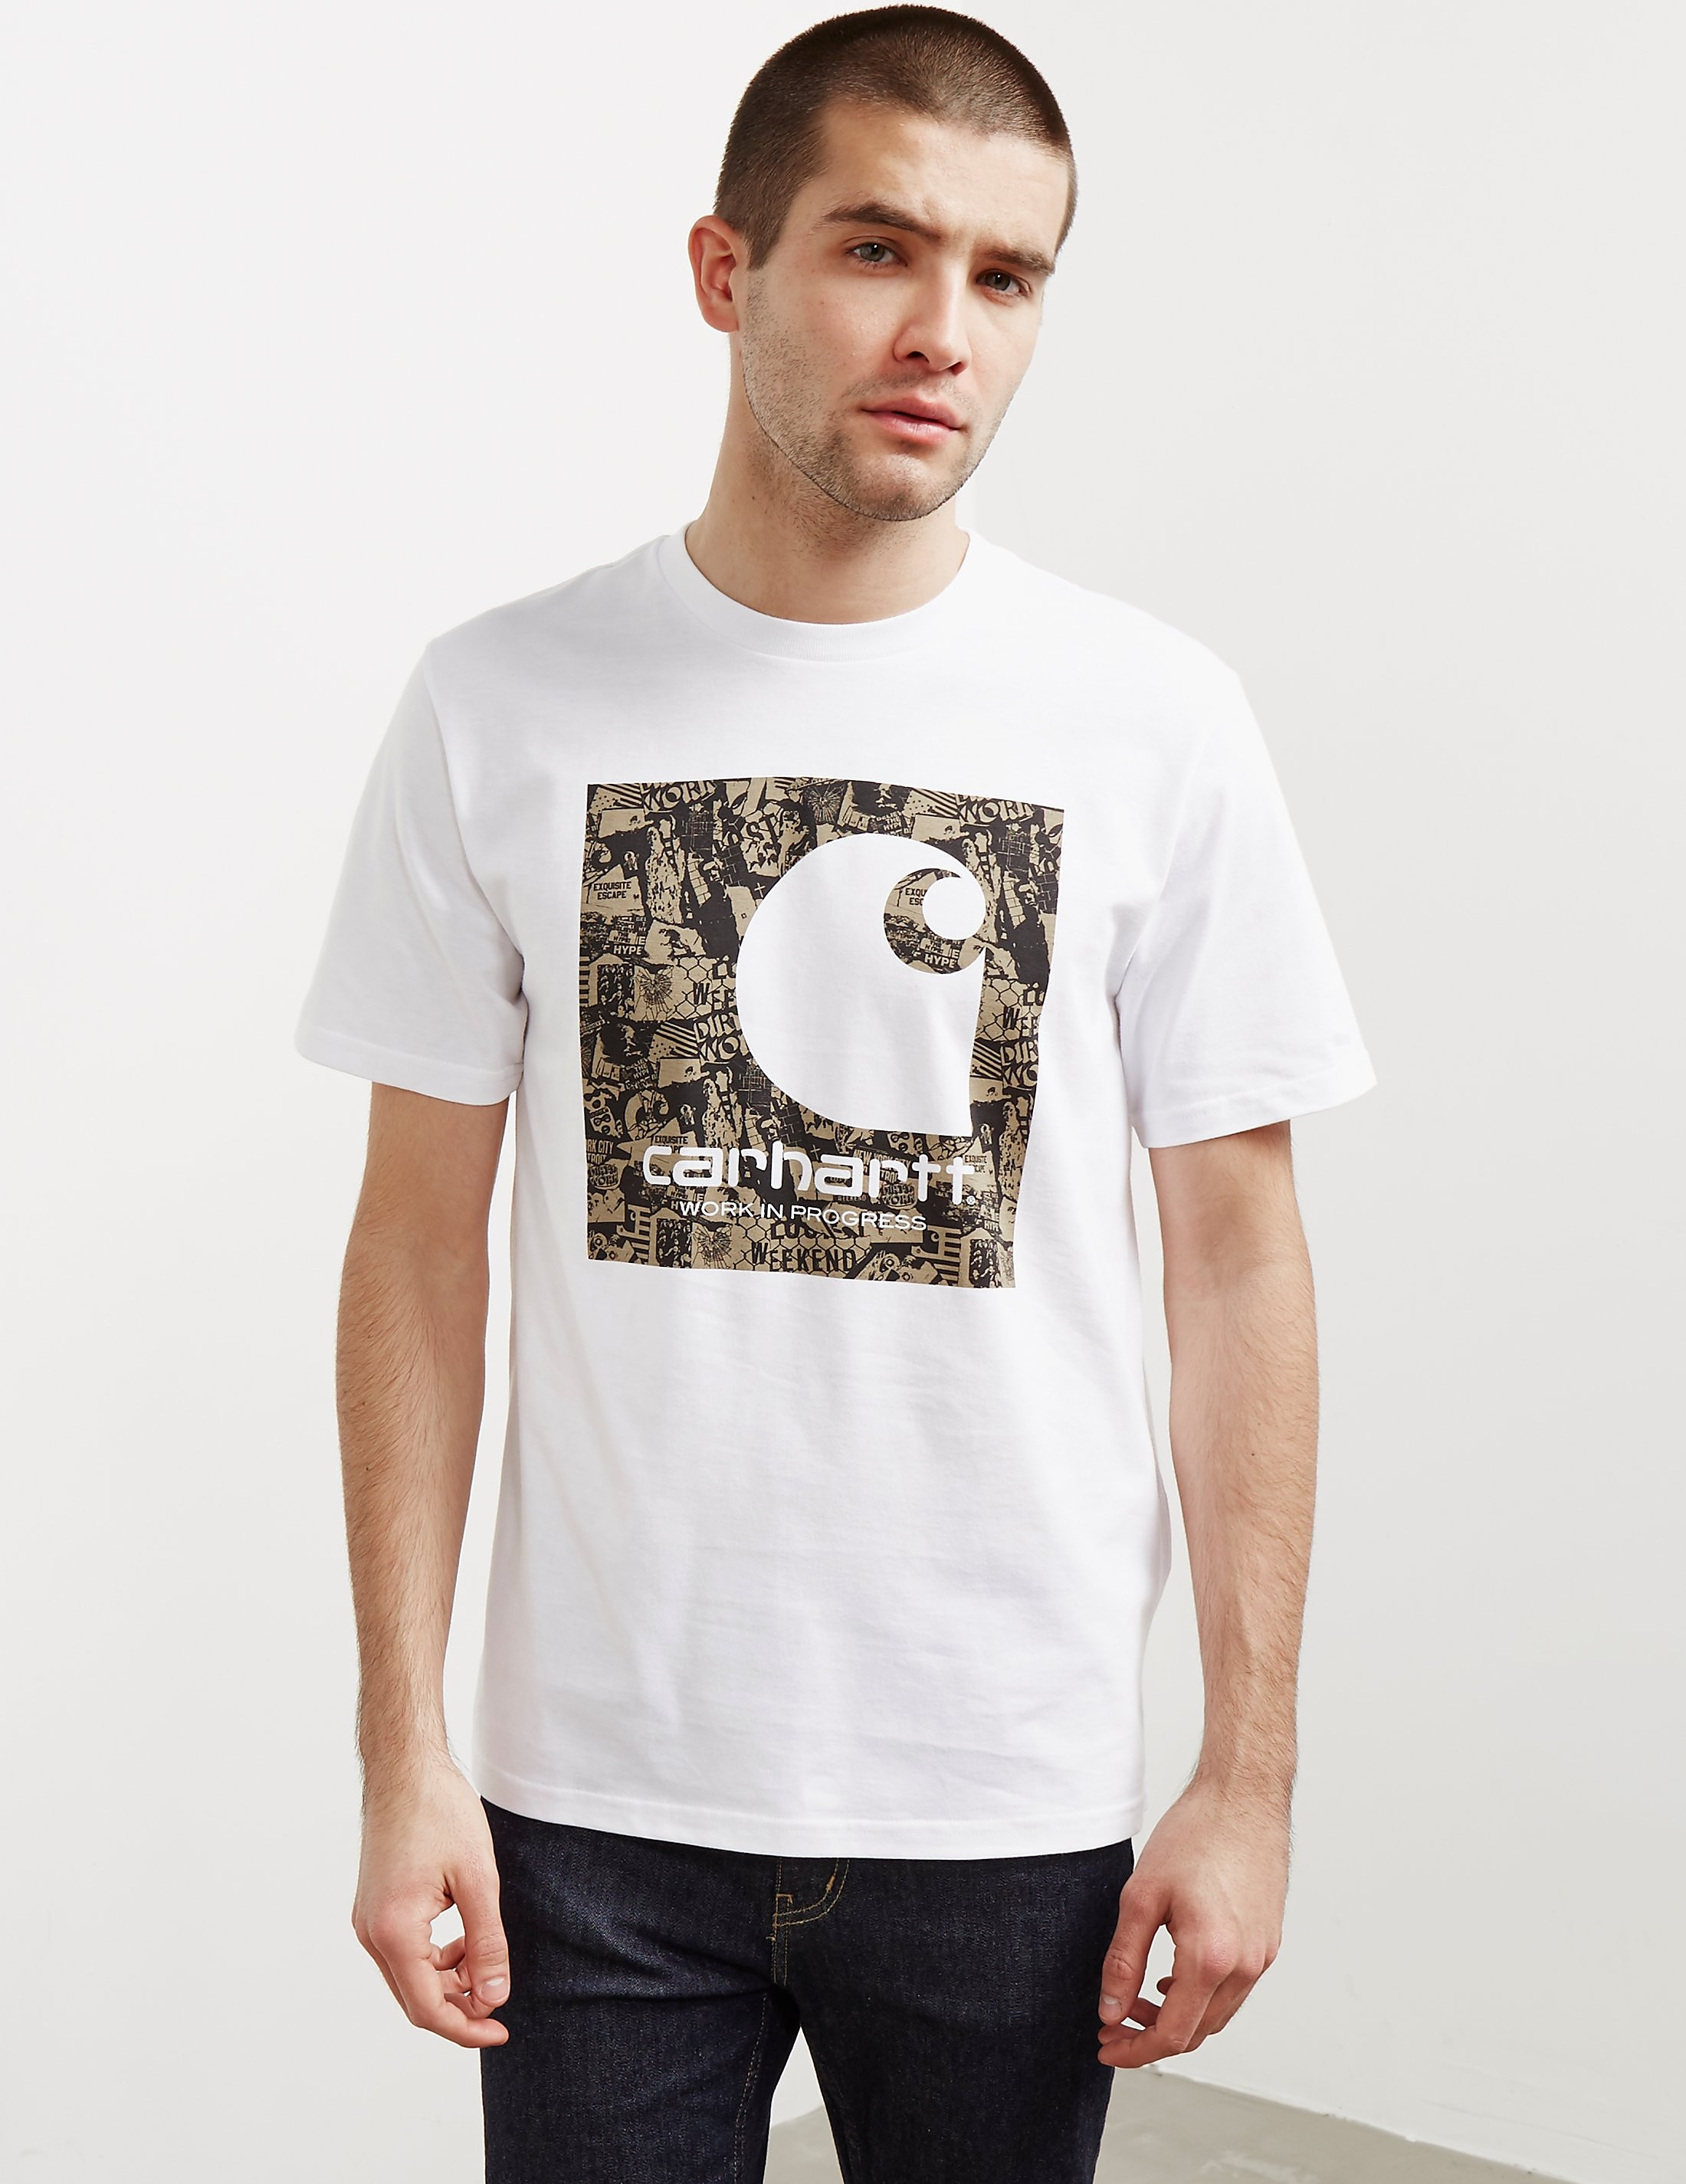 Carhartt WIP Collage Short Sleeve T-Shirt